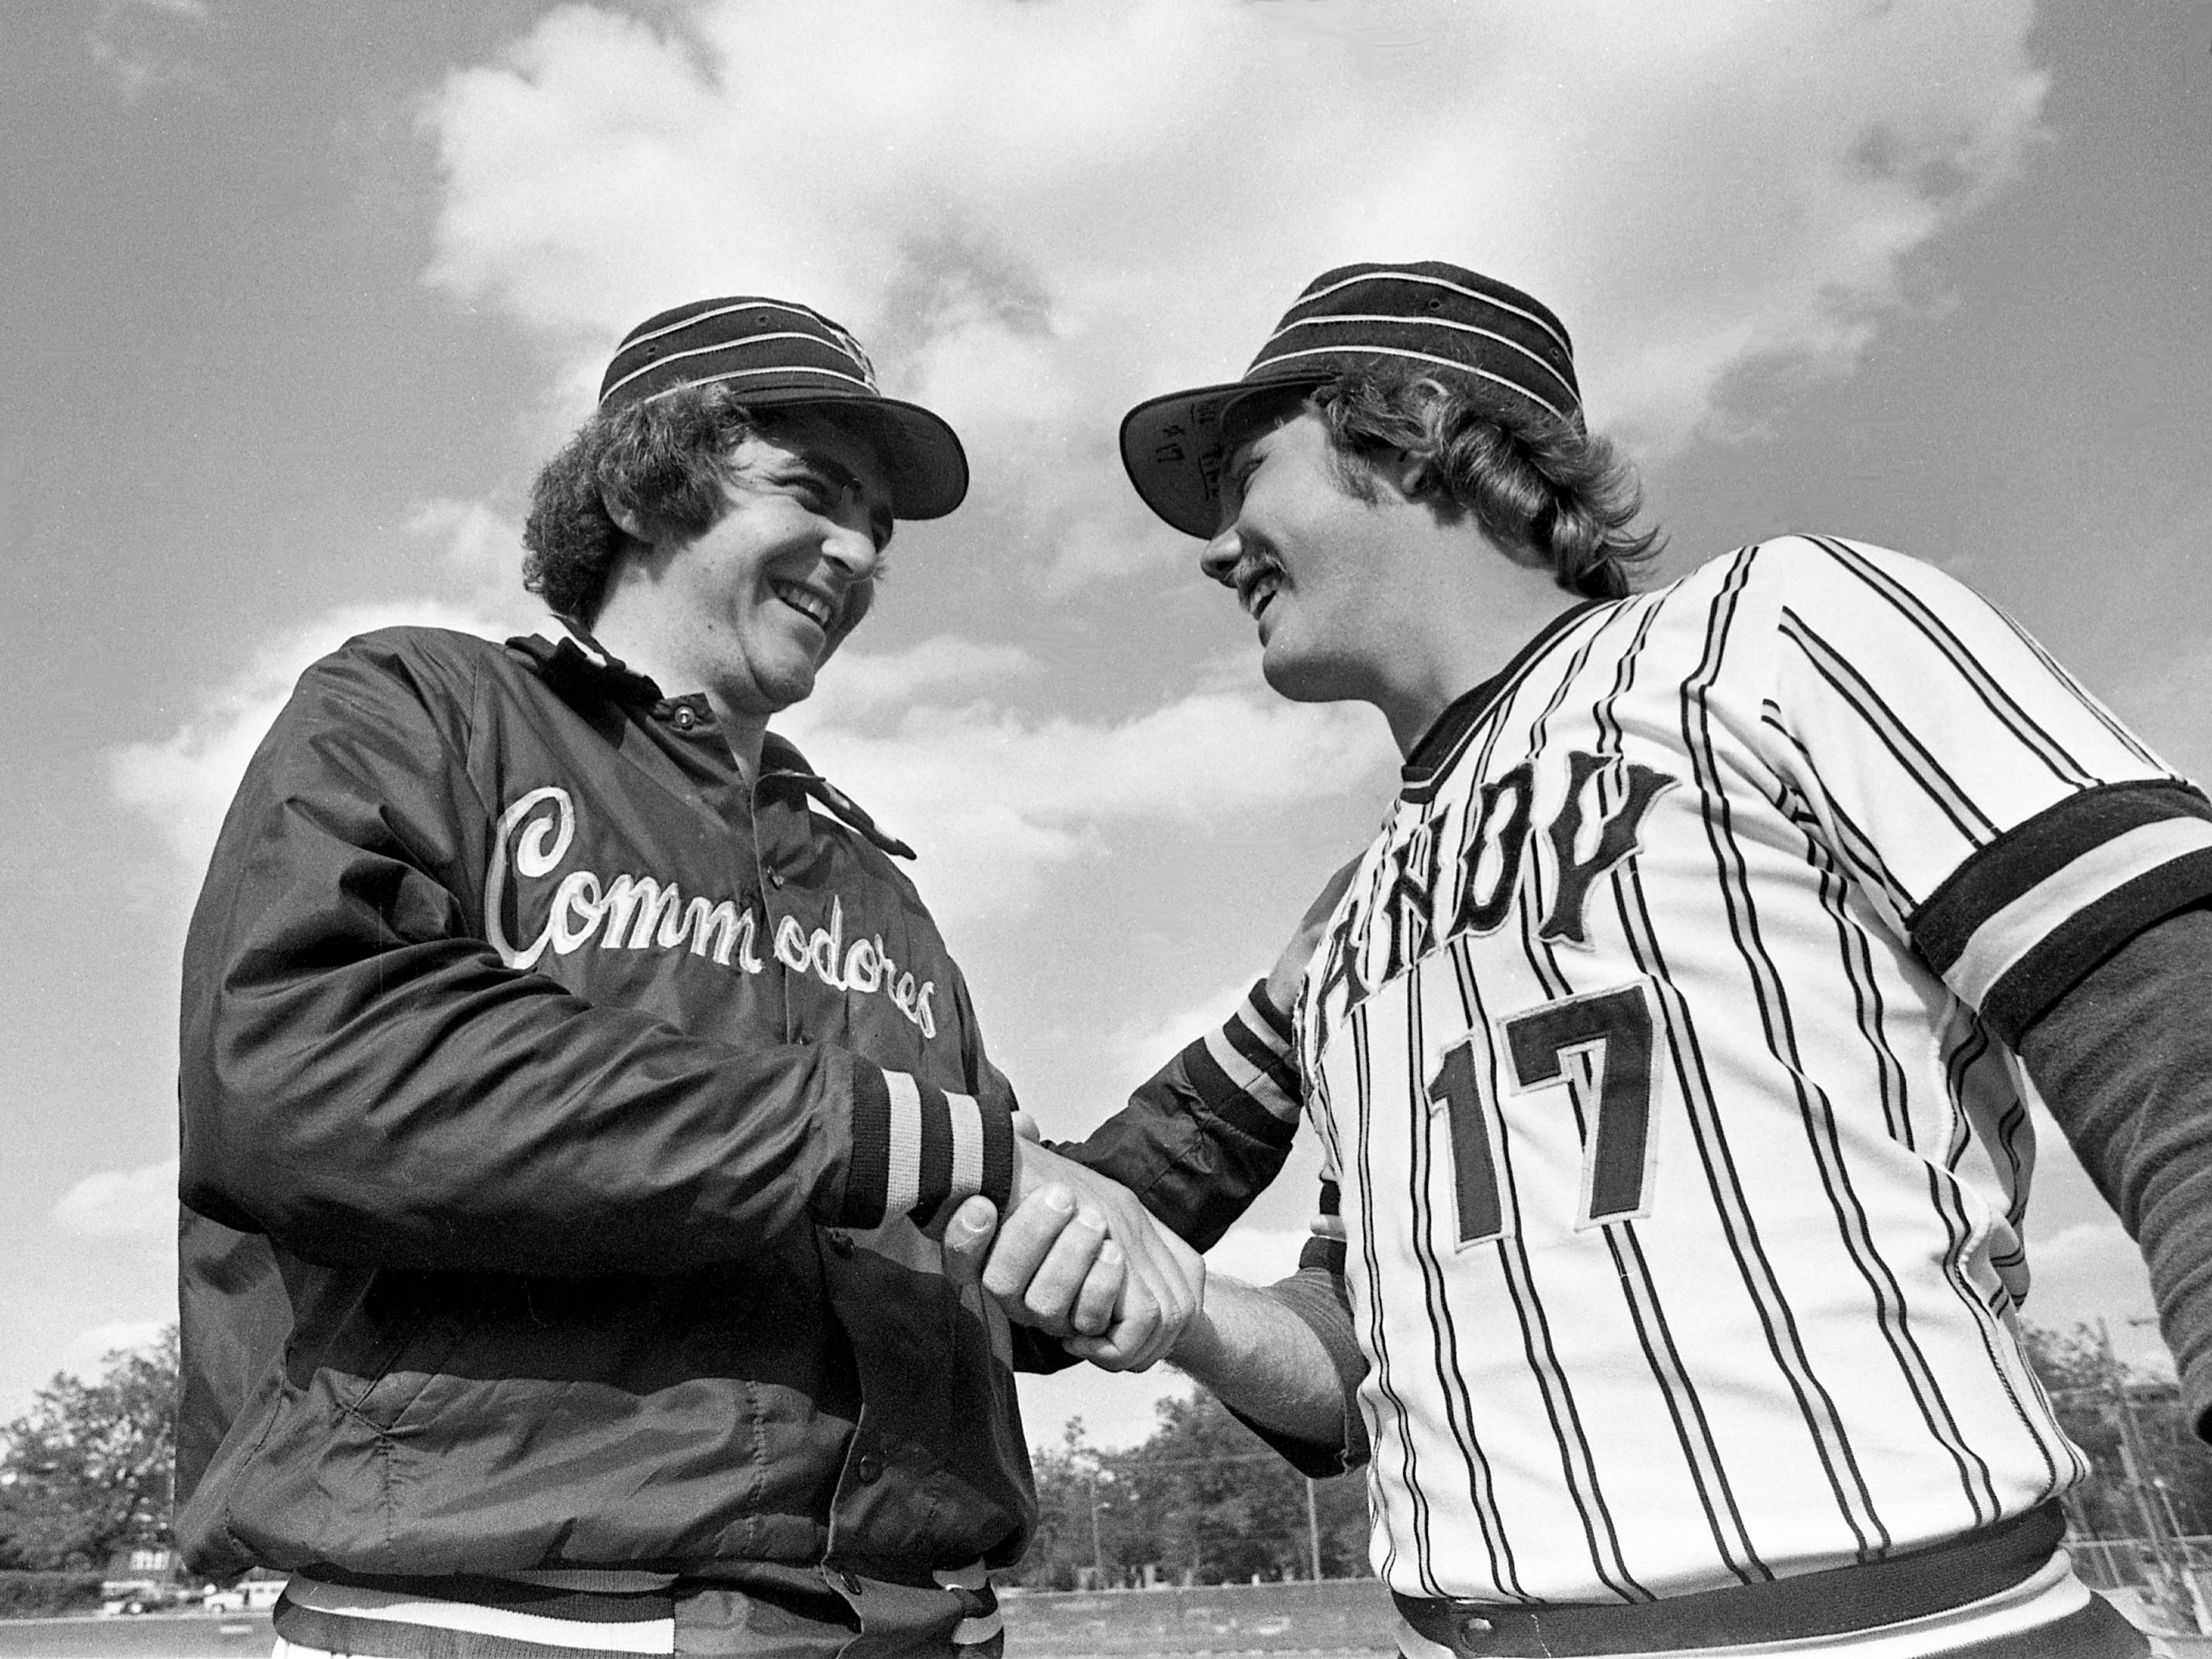 Vanderbilt sophomore pitcher Mike McCarthy, left, appears happy to have won his first SEC game as he receives congratulations from teammate Mike Pike after defeating Florida 7-6 in the first game of the doubleheader April 27, 1979. Pike hit his 10th home run of the season in the victory.